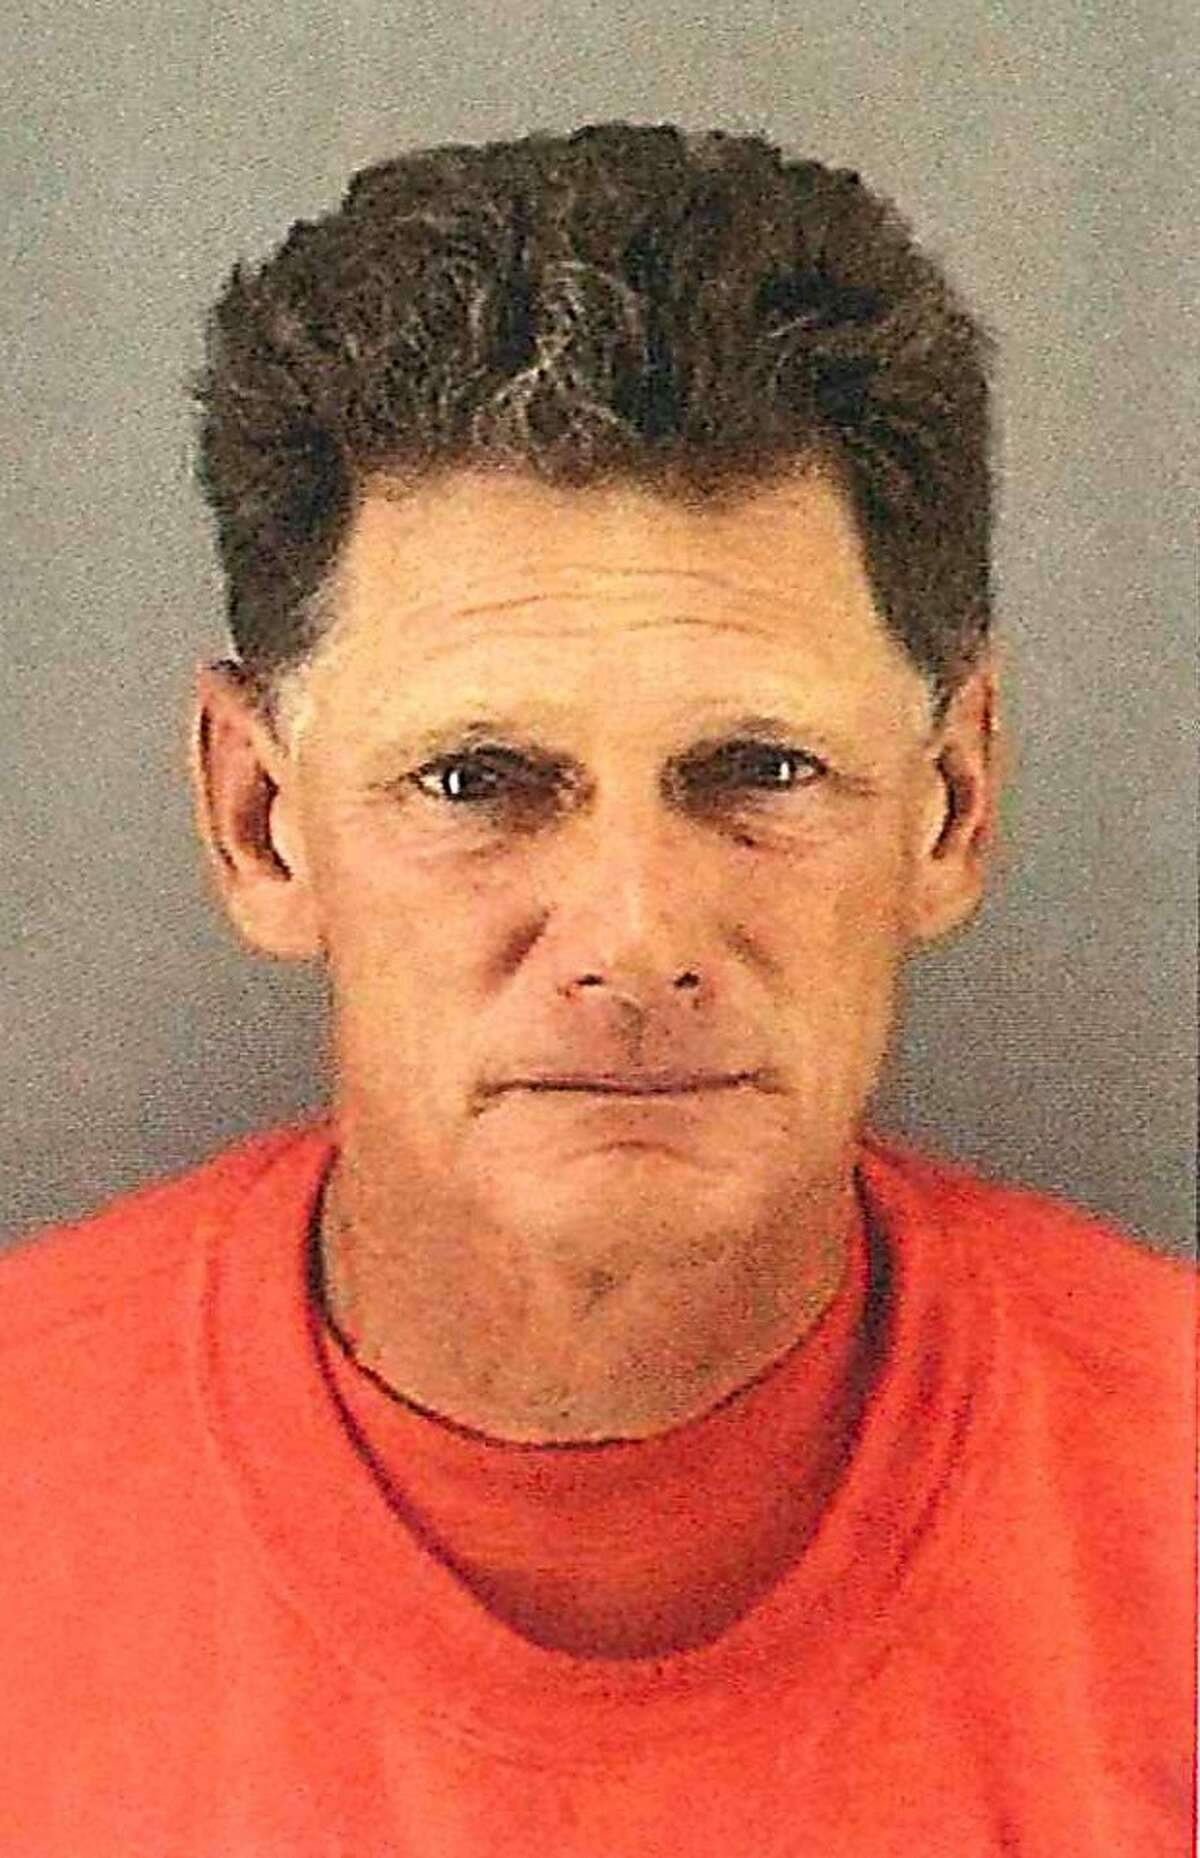 The San Francisco Police Department released this photo of Thomas Burnoski, 57, an employee of the city Recreation and Park Department, who is accused of running over and killing 35-year-old Christine Svanemyr while she was lying on the grass at Holly Park in the Bernal Heights neighborhood, then driving away from the scene in his city-owned truck.